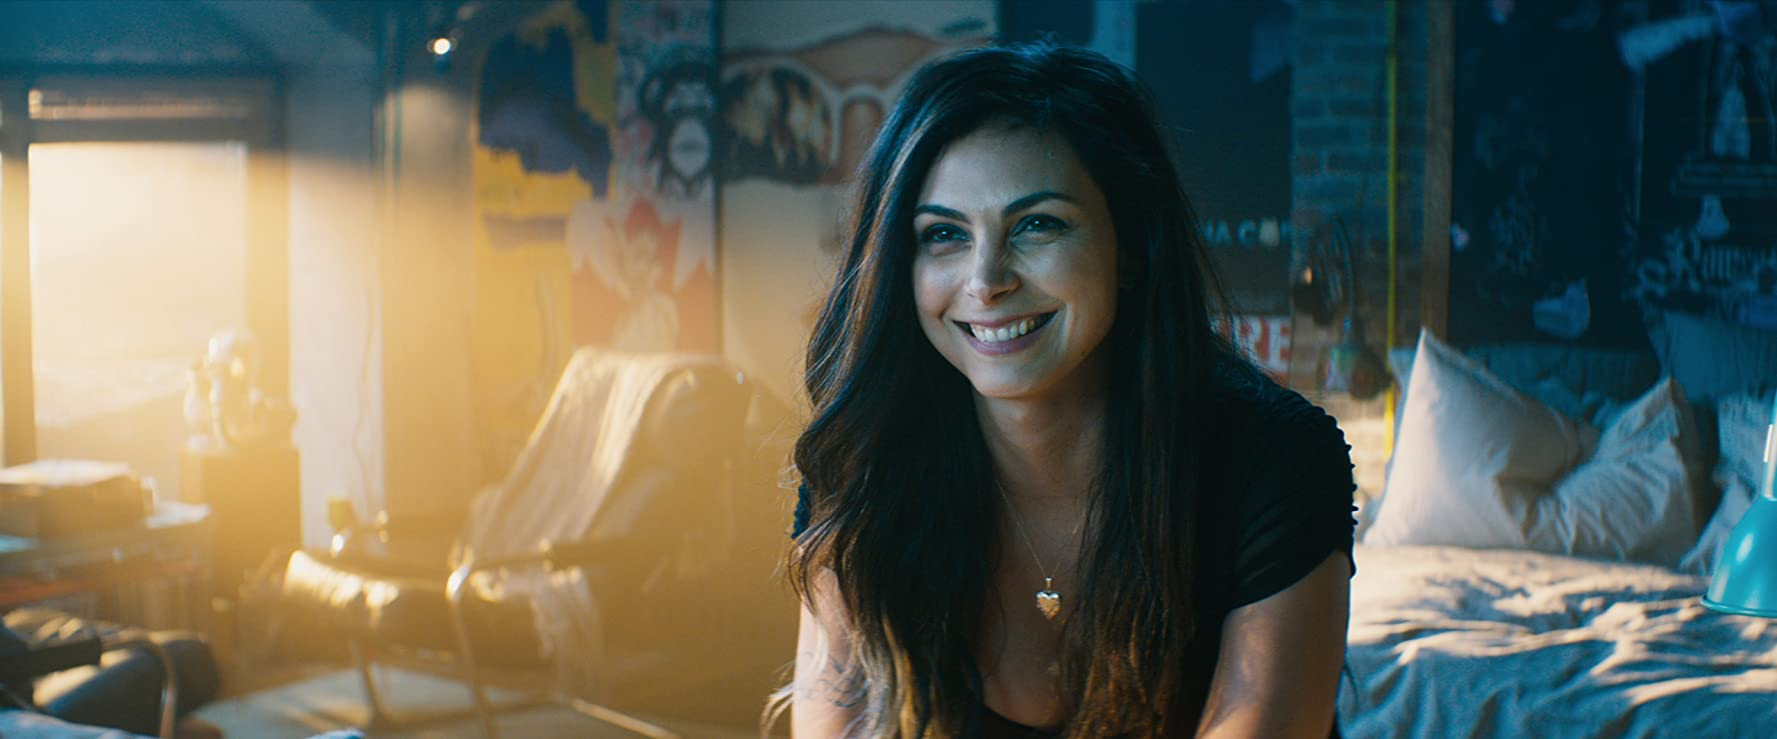 Morena Baccarin in Deadpool 2 (2018)